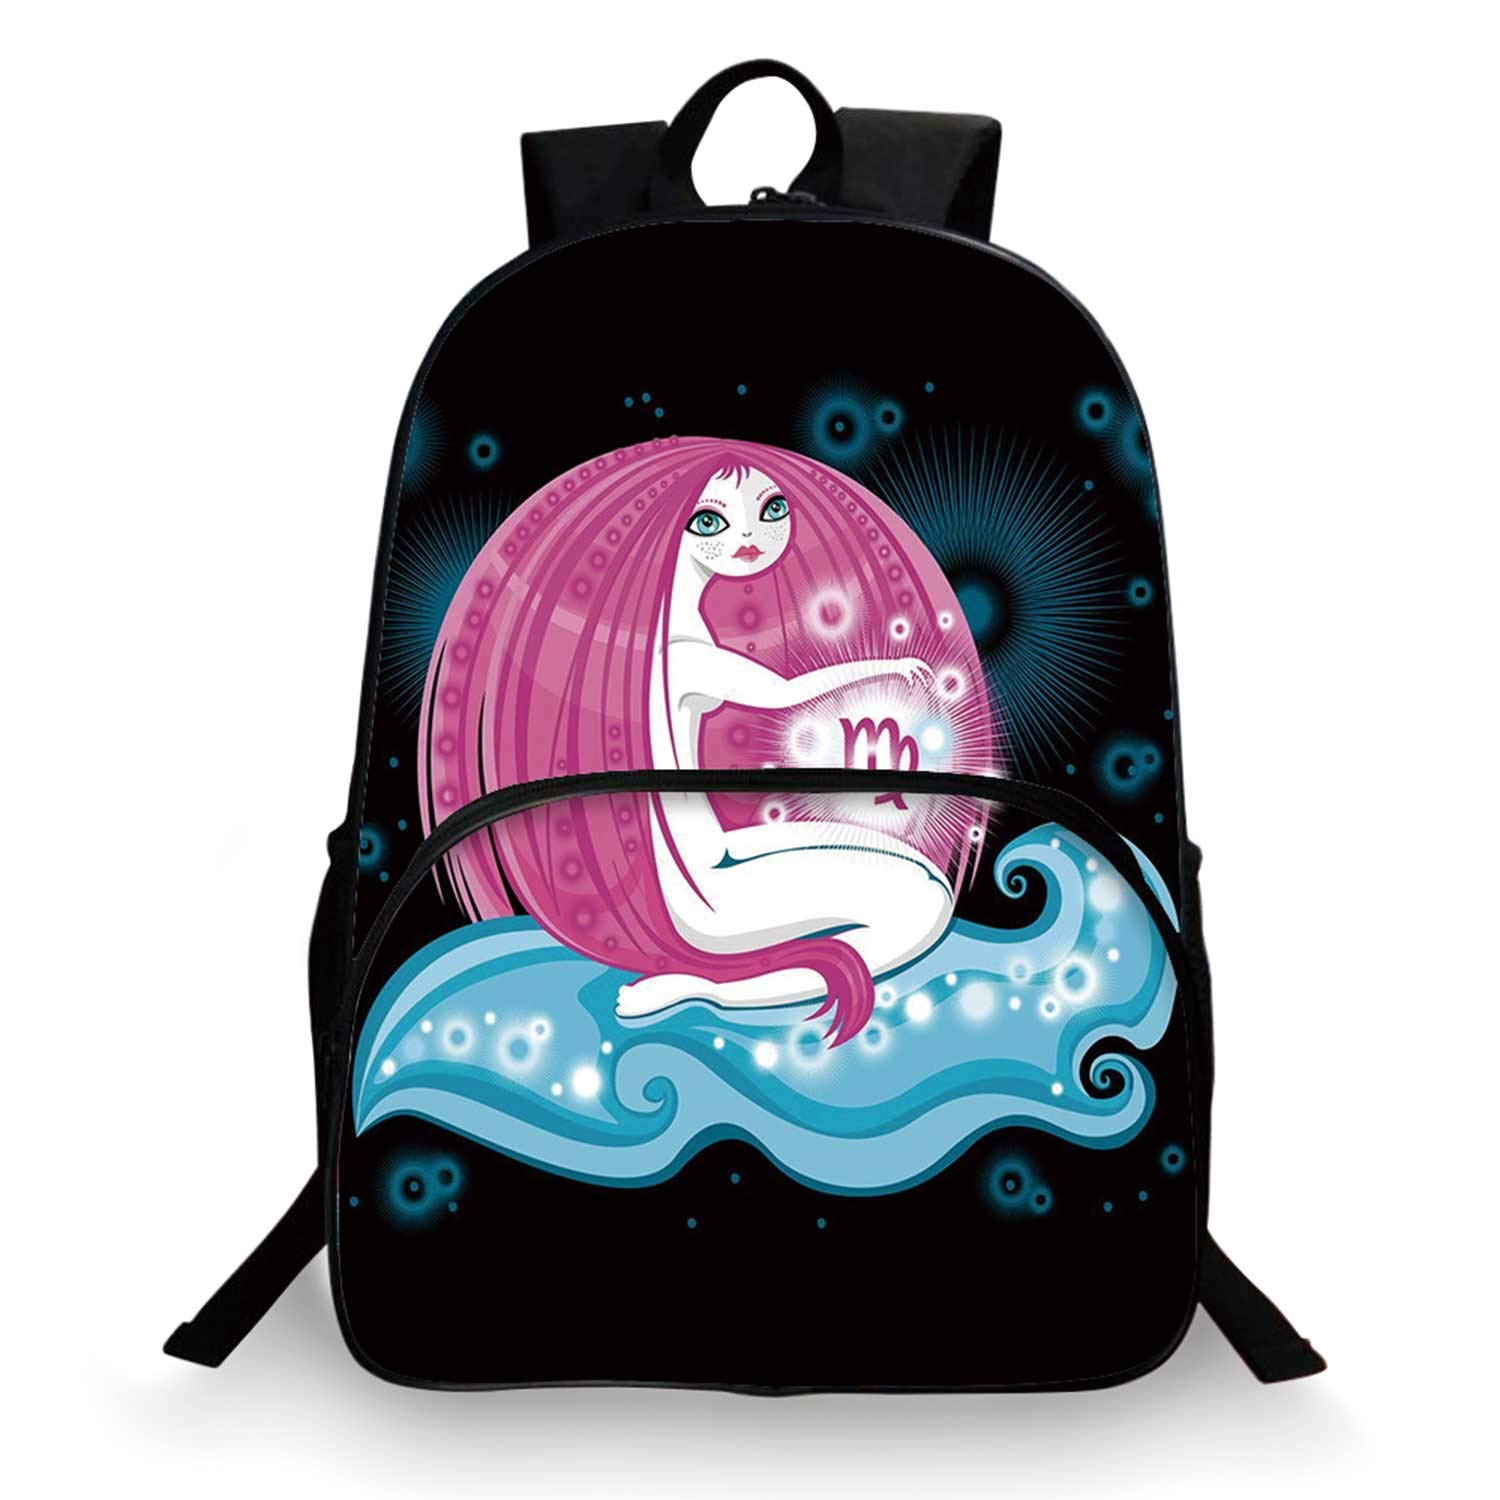 Virgo Various Schoolbag,Cartoon Horoscope Symbol with Really Long Haired Girl Sitting on Wave in Space Decorative for student,11''Lx6''Wx15''H by C COABALLA